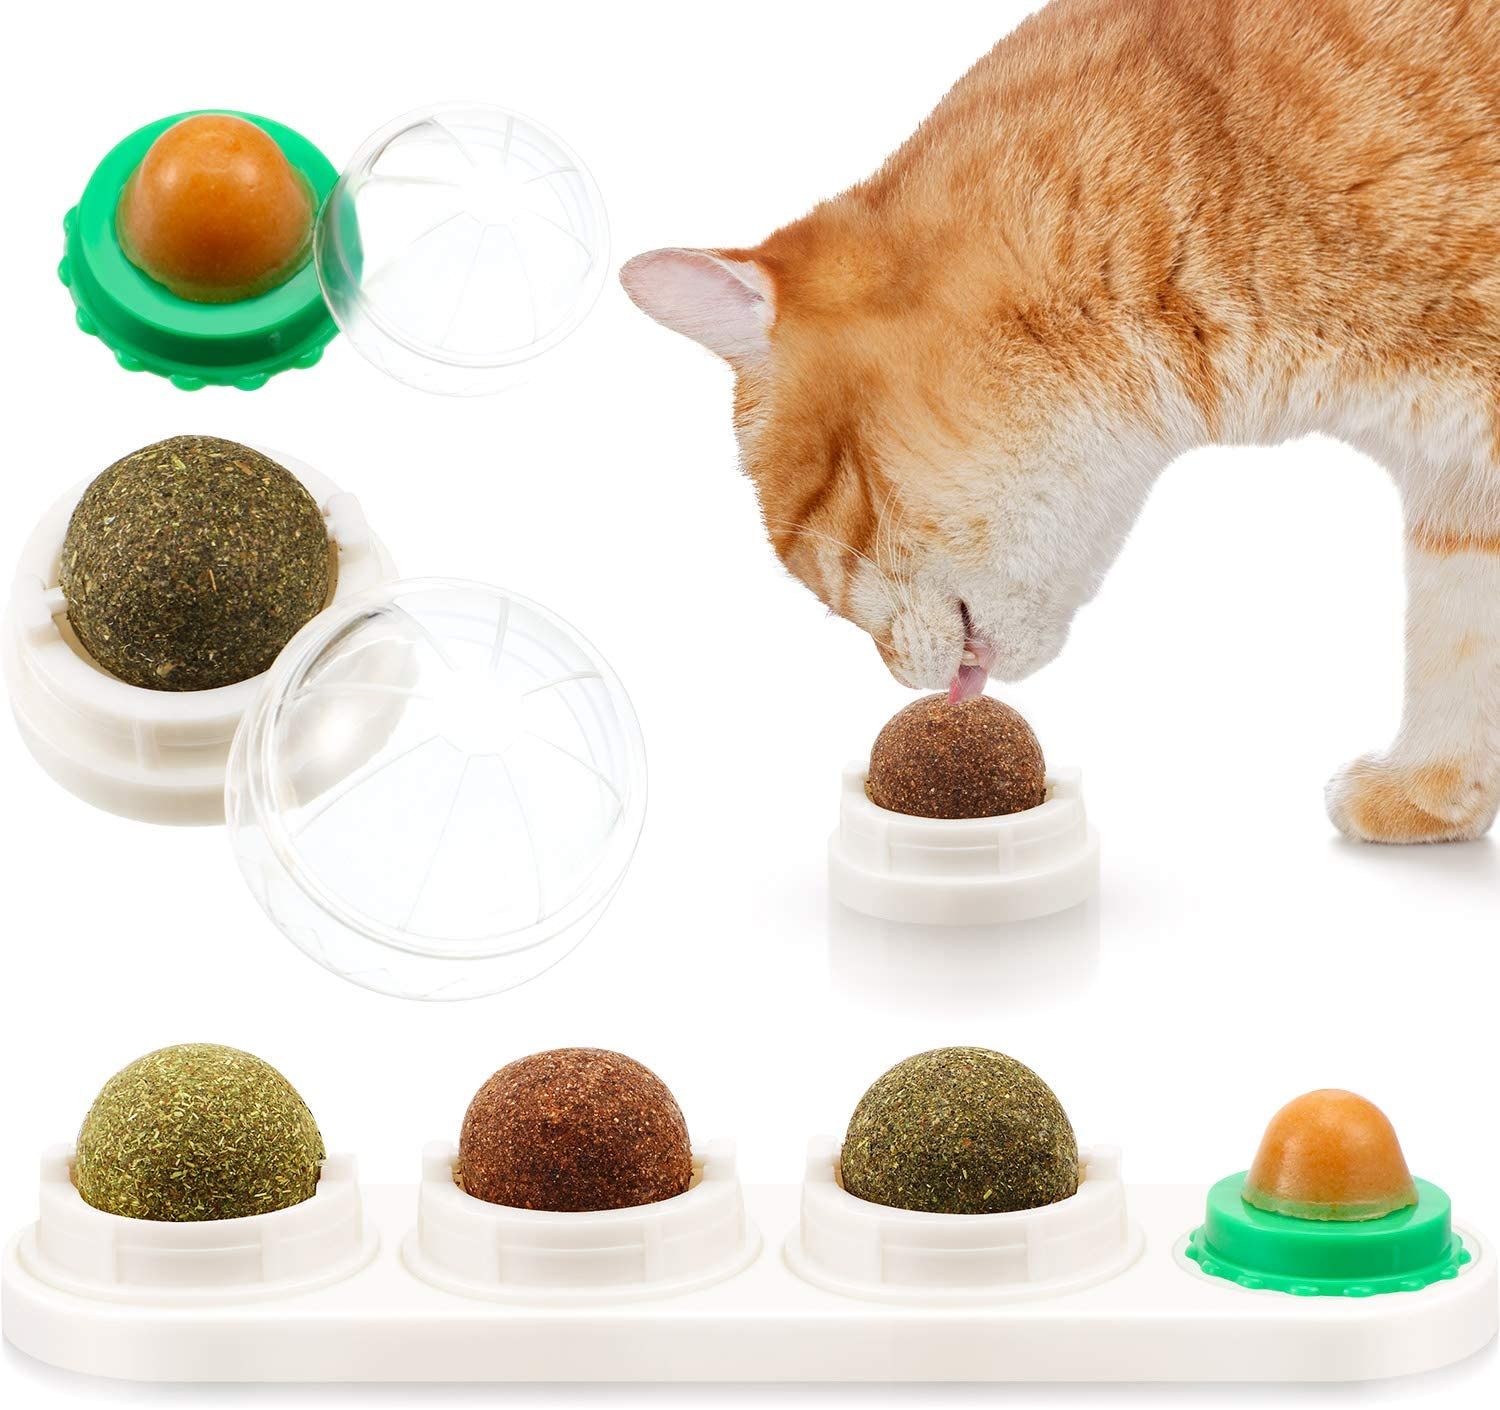 Sumind Catnip Toy Edible Balls Rotatable Catnip Ball Cat Toy 4-1 Removable Catnip Edible Balls Licking Toys for Cats Kitten Kitty